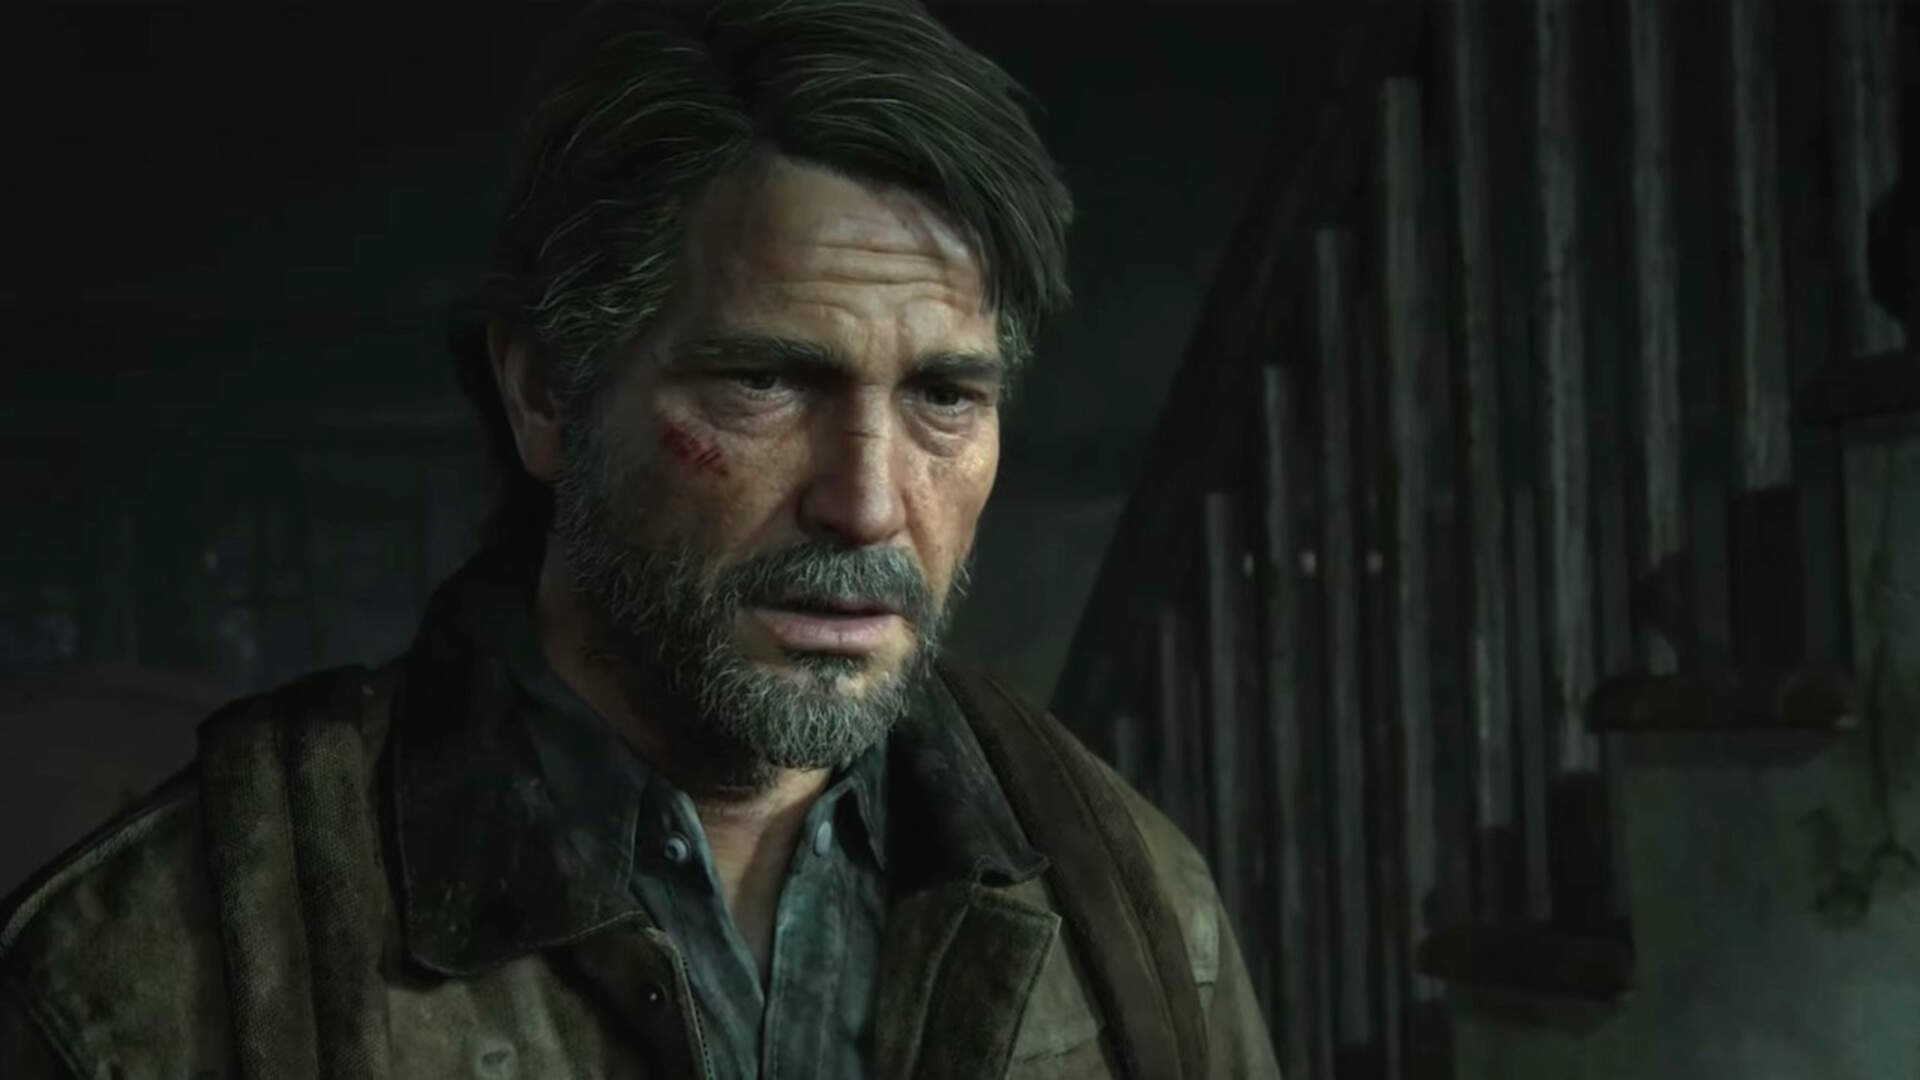 The Last of Us Part 2: Does Joel Die?